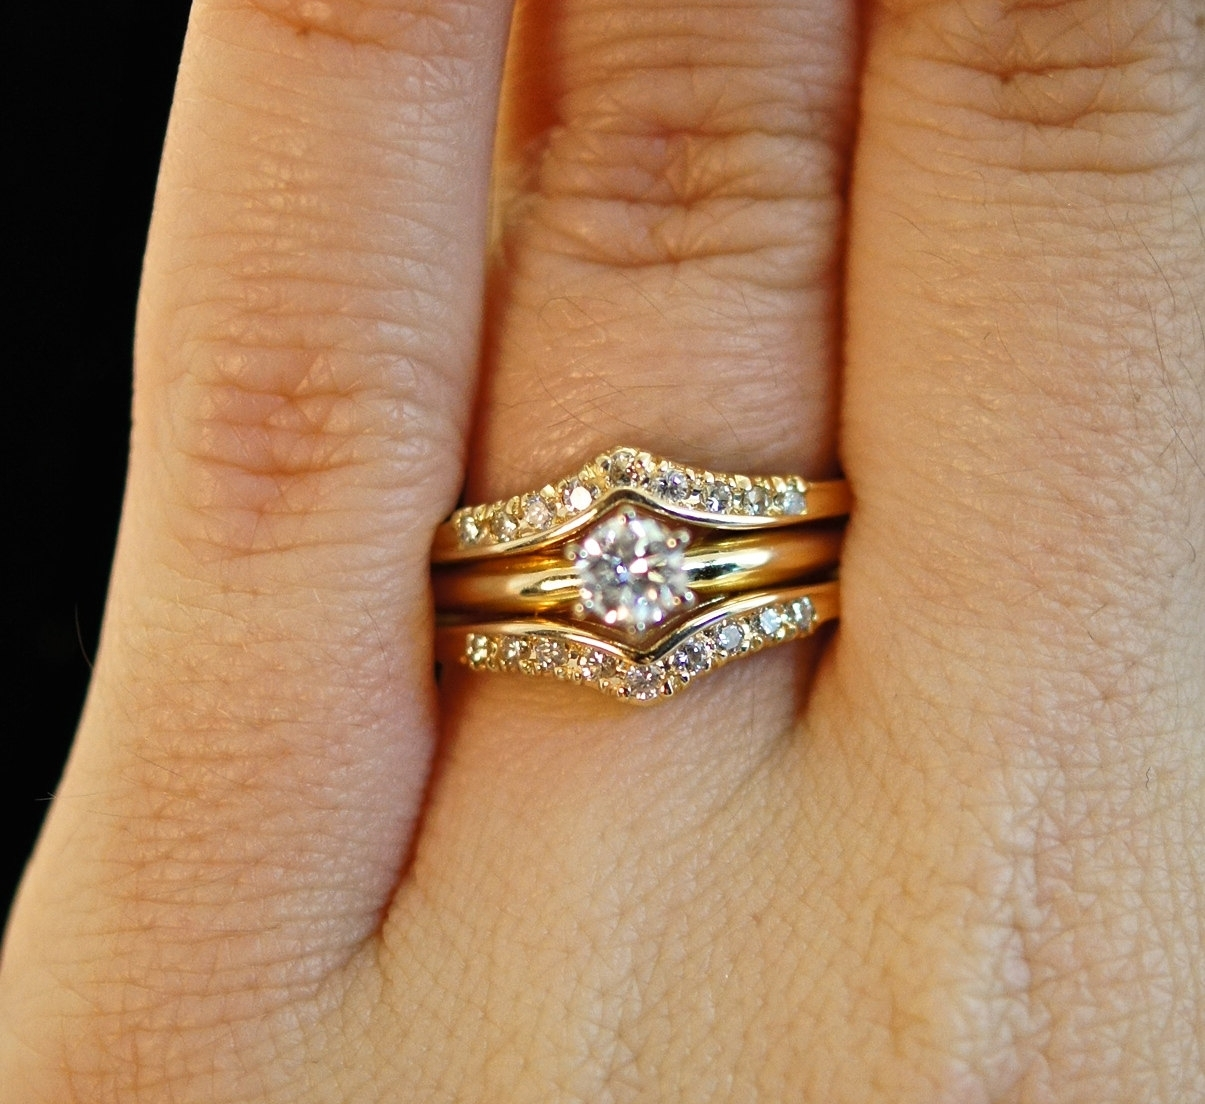 Vintage Diamond Engagement Wedding Ring Set – Solitaire Ring Regarding Most Recent Chevron Eternity Rings (View 15 of 15)